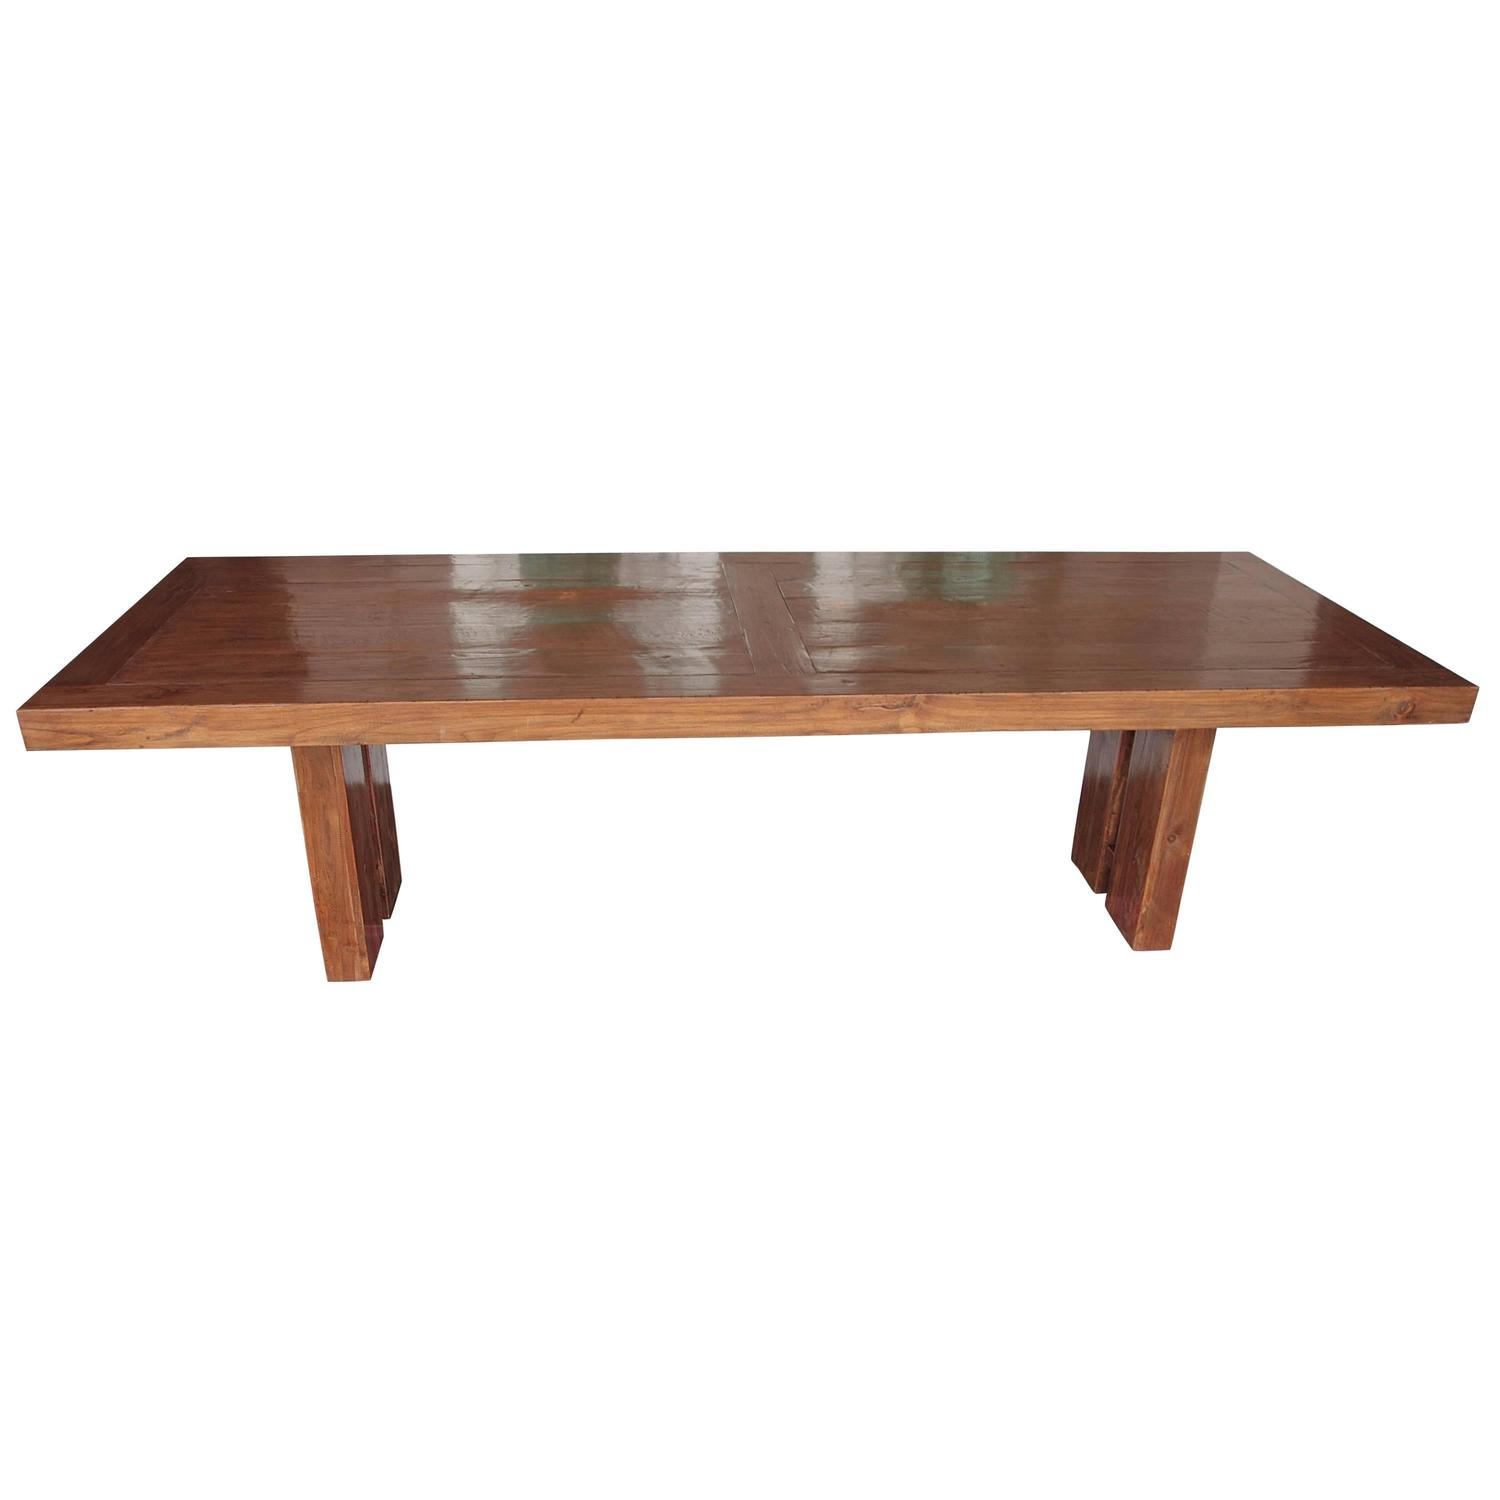 Transitional Solid Teak Wood Dining Table at 1stdibs : 4496613z from www.1stdibs.com size 1500 x 1500 jpeg 42kB